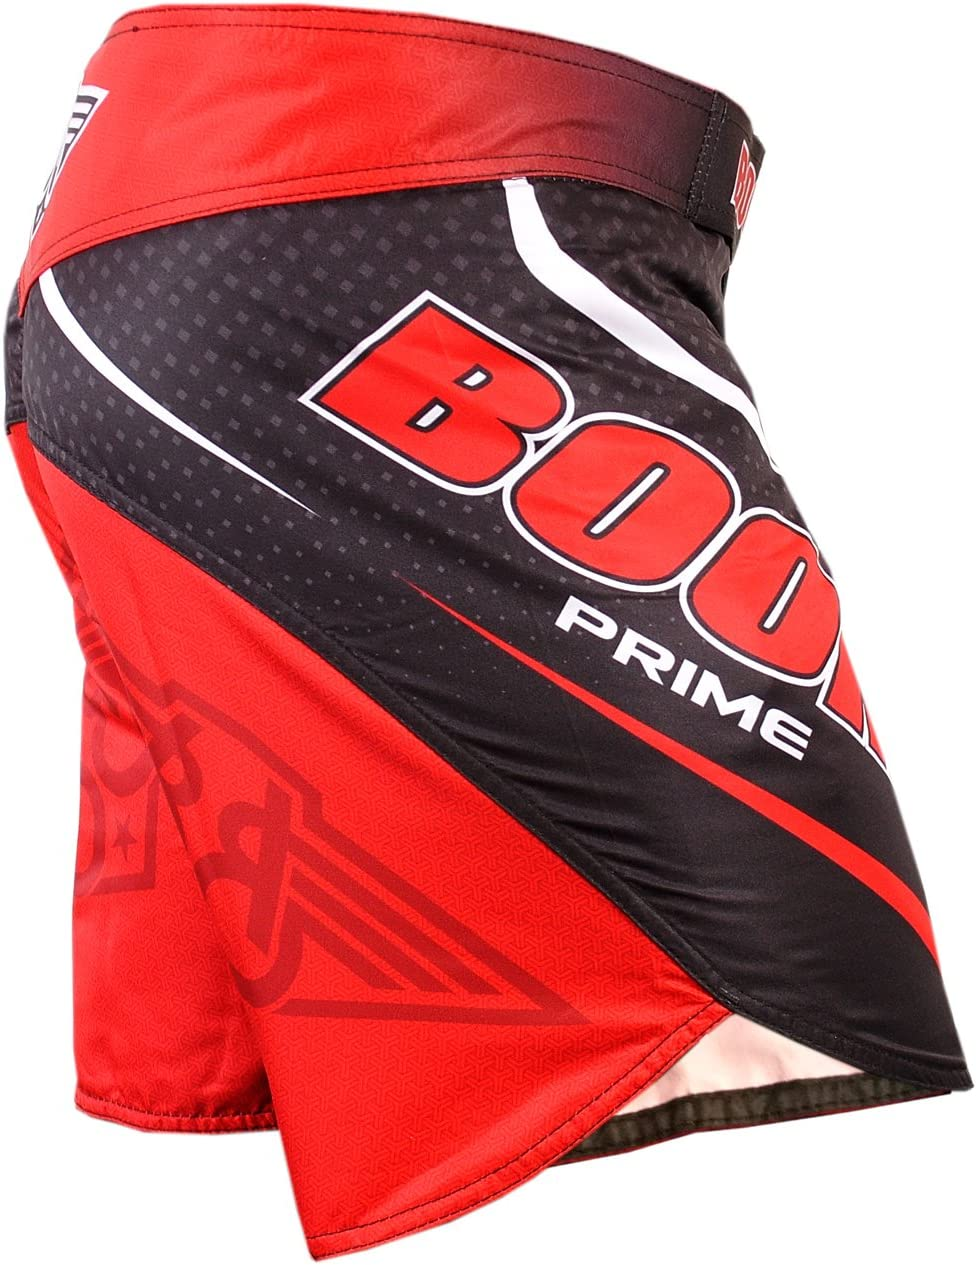 BOOM Prime Ladies MMA Shorts Muay Thai Cage Fight Kick Boxing Short Grappling Martial Arts Gear UFC Gym Workout Womens Fighting Clothing Training Trunks